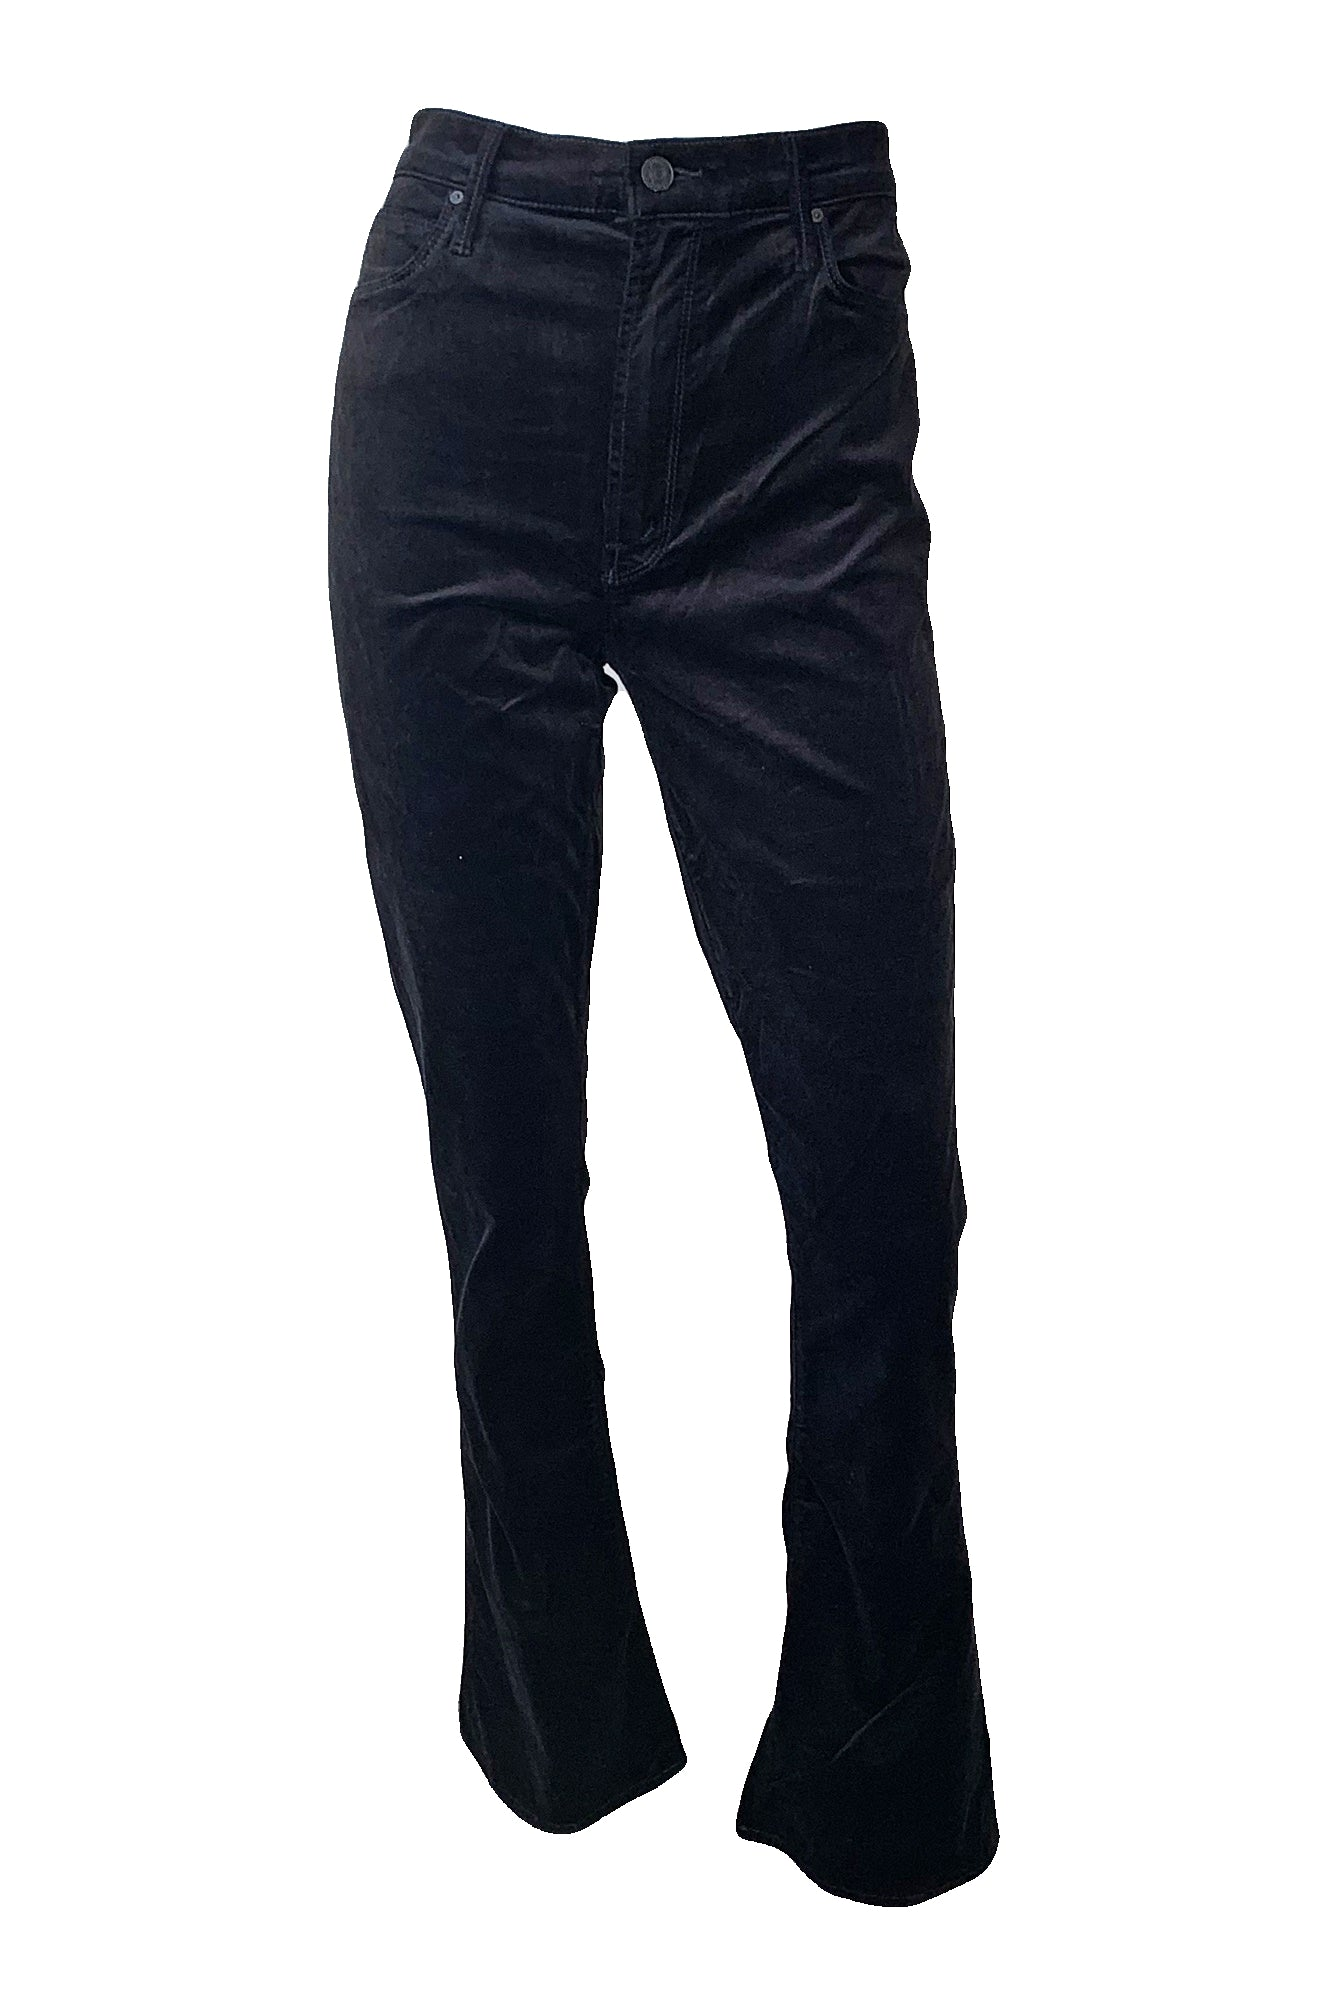 High Waisted Runaway Velvet Jeans-Limited Sizes Available - Augusta Twenty